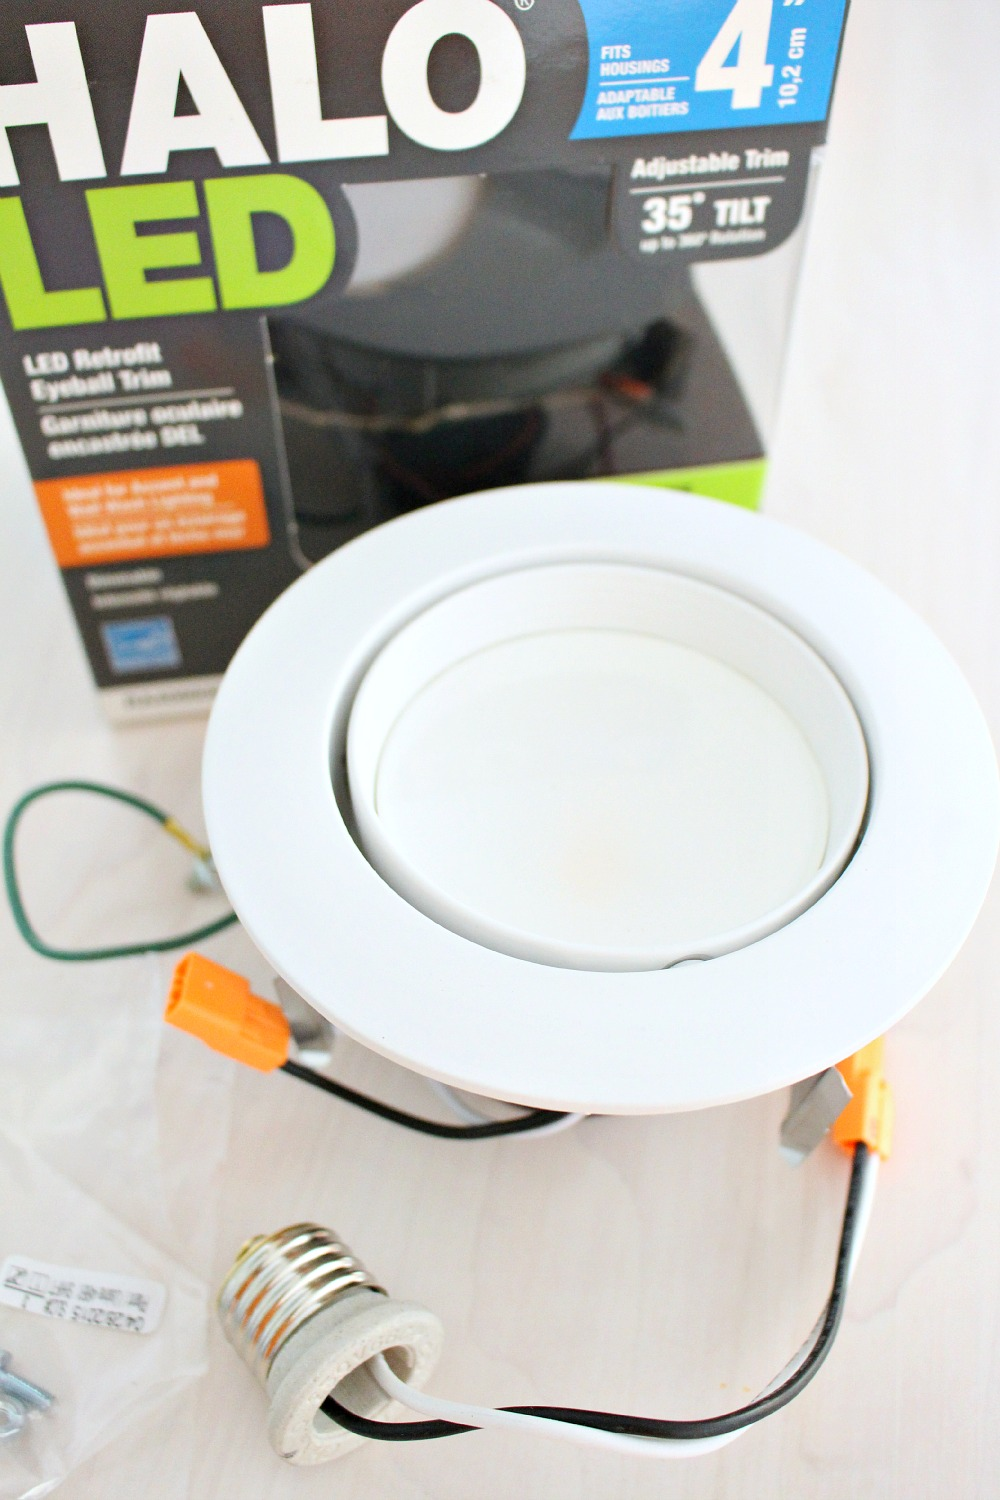 Halo LED Retrofit Pot Light Kit Review